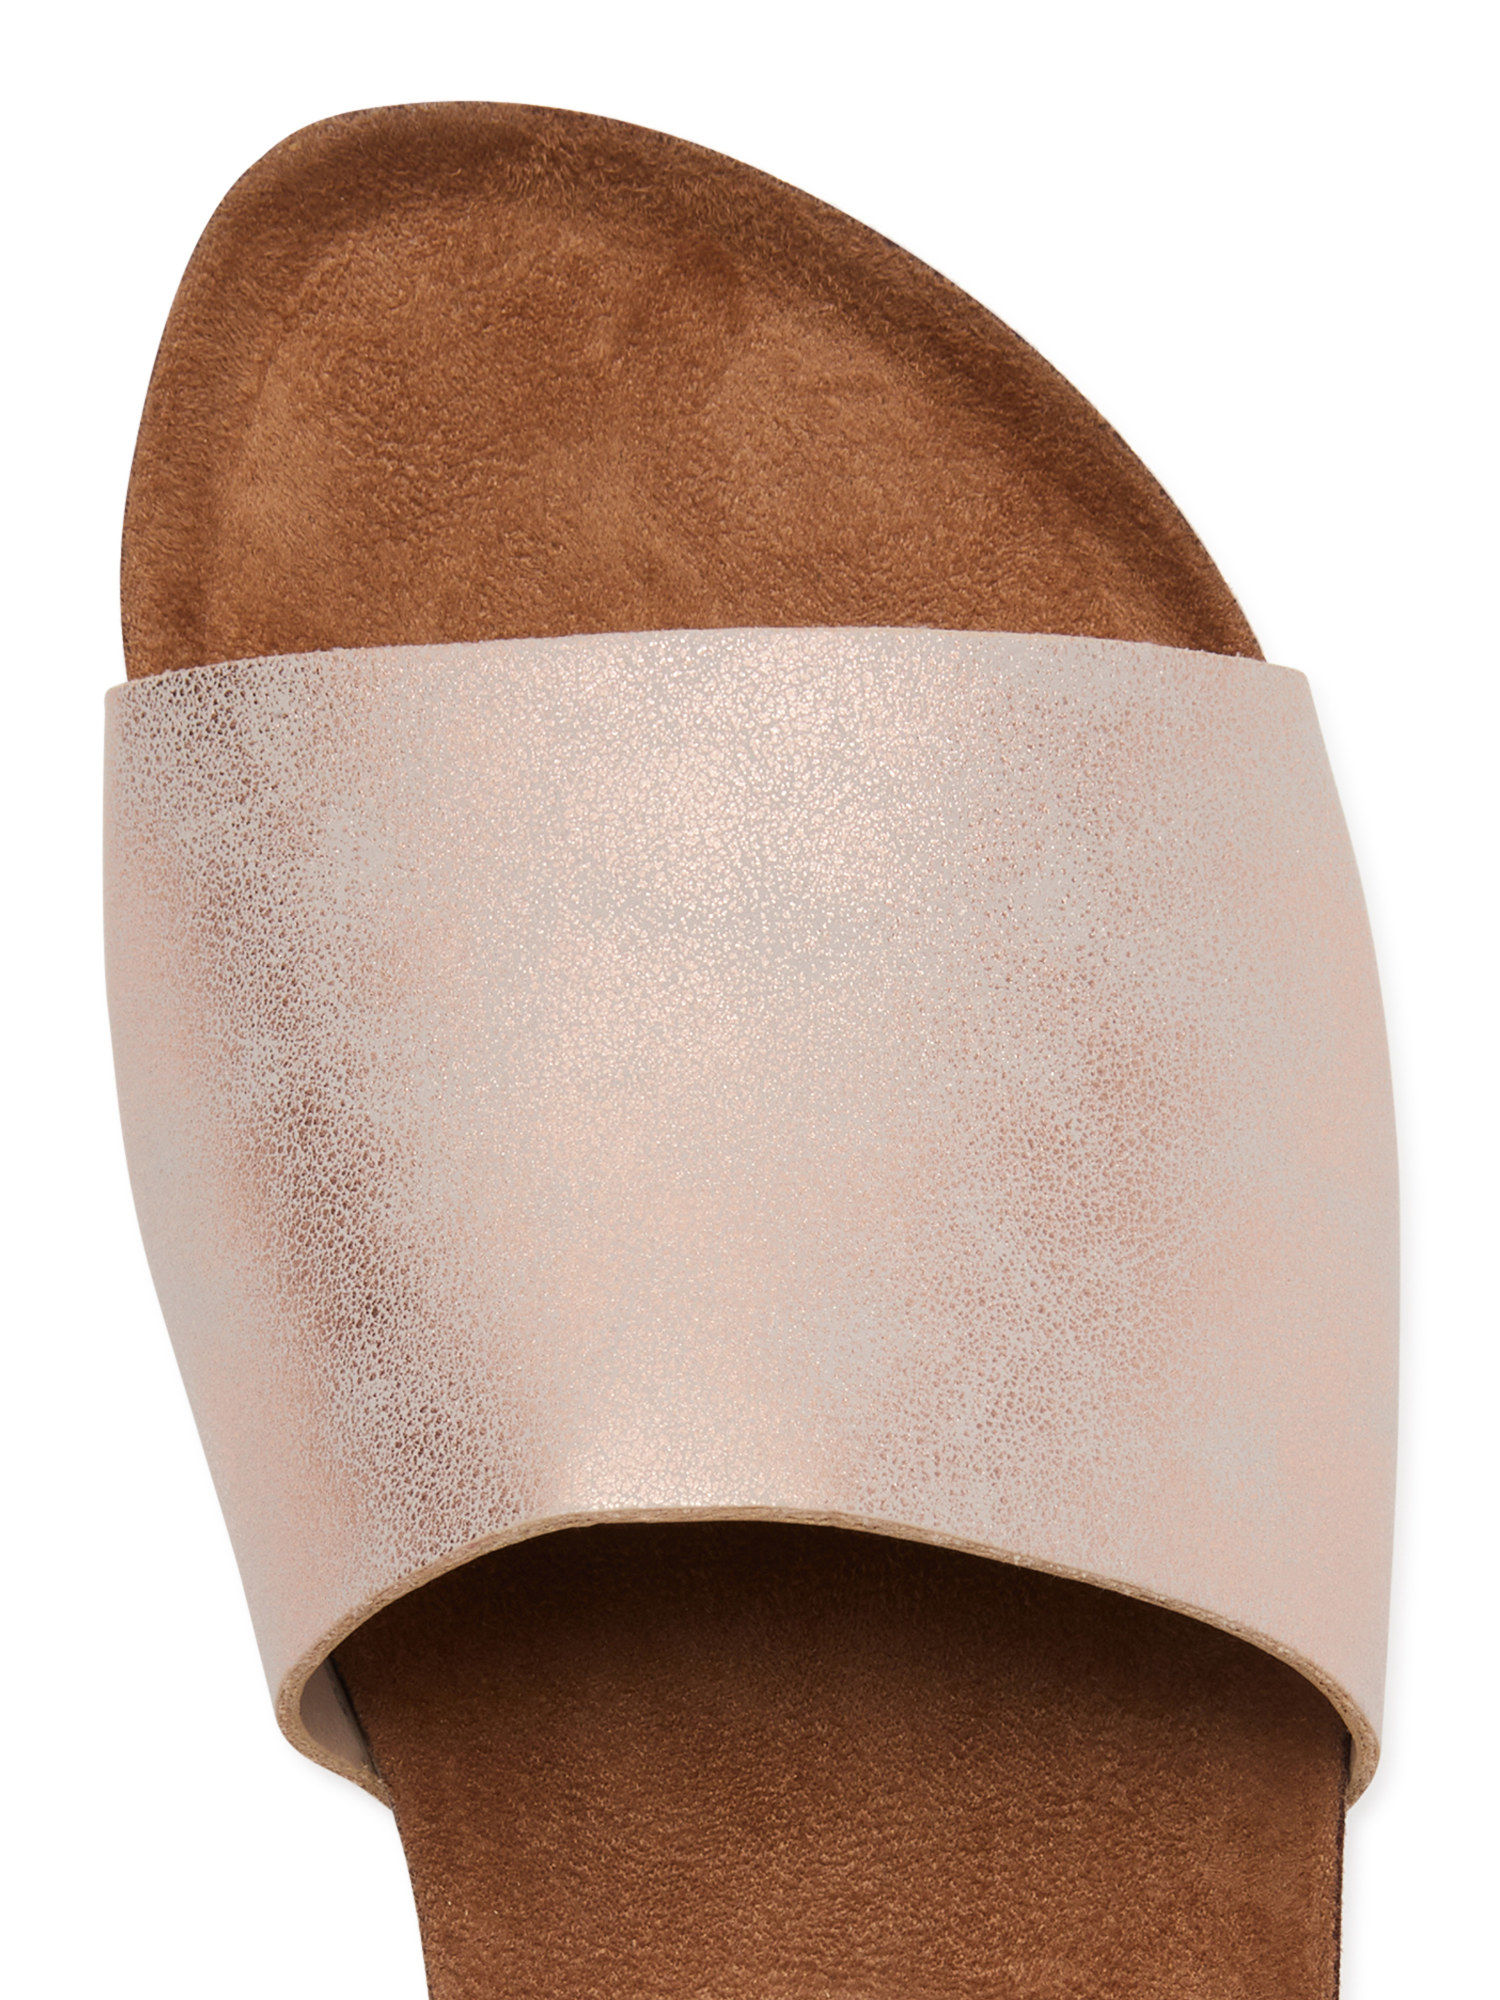 A top-down view of a rose gold slide sandal